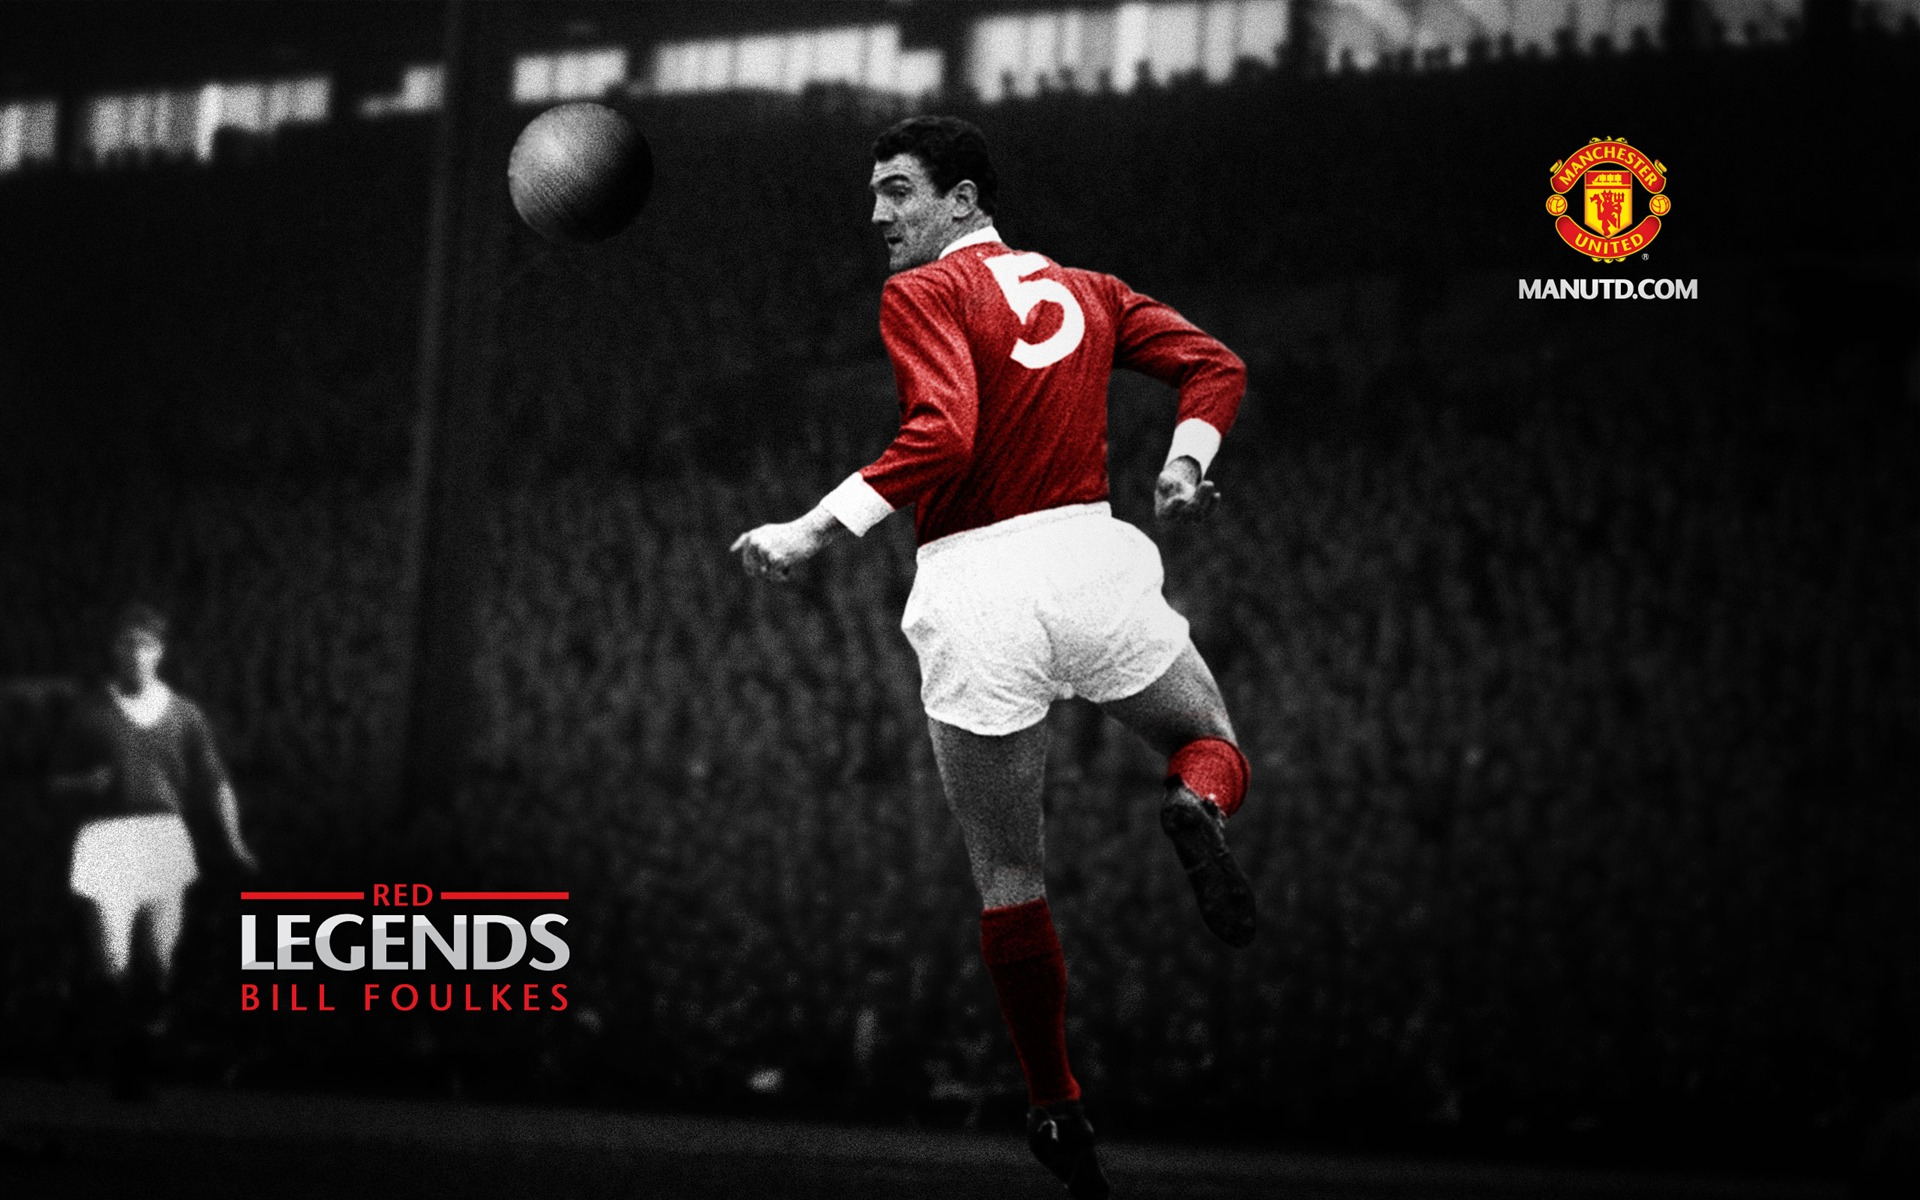 Bill Foulkes Red Legends Manchester United Wallpaper